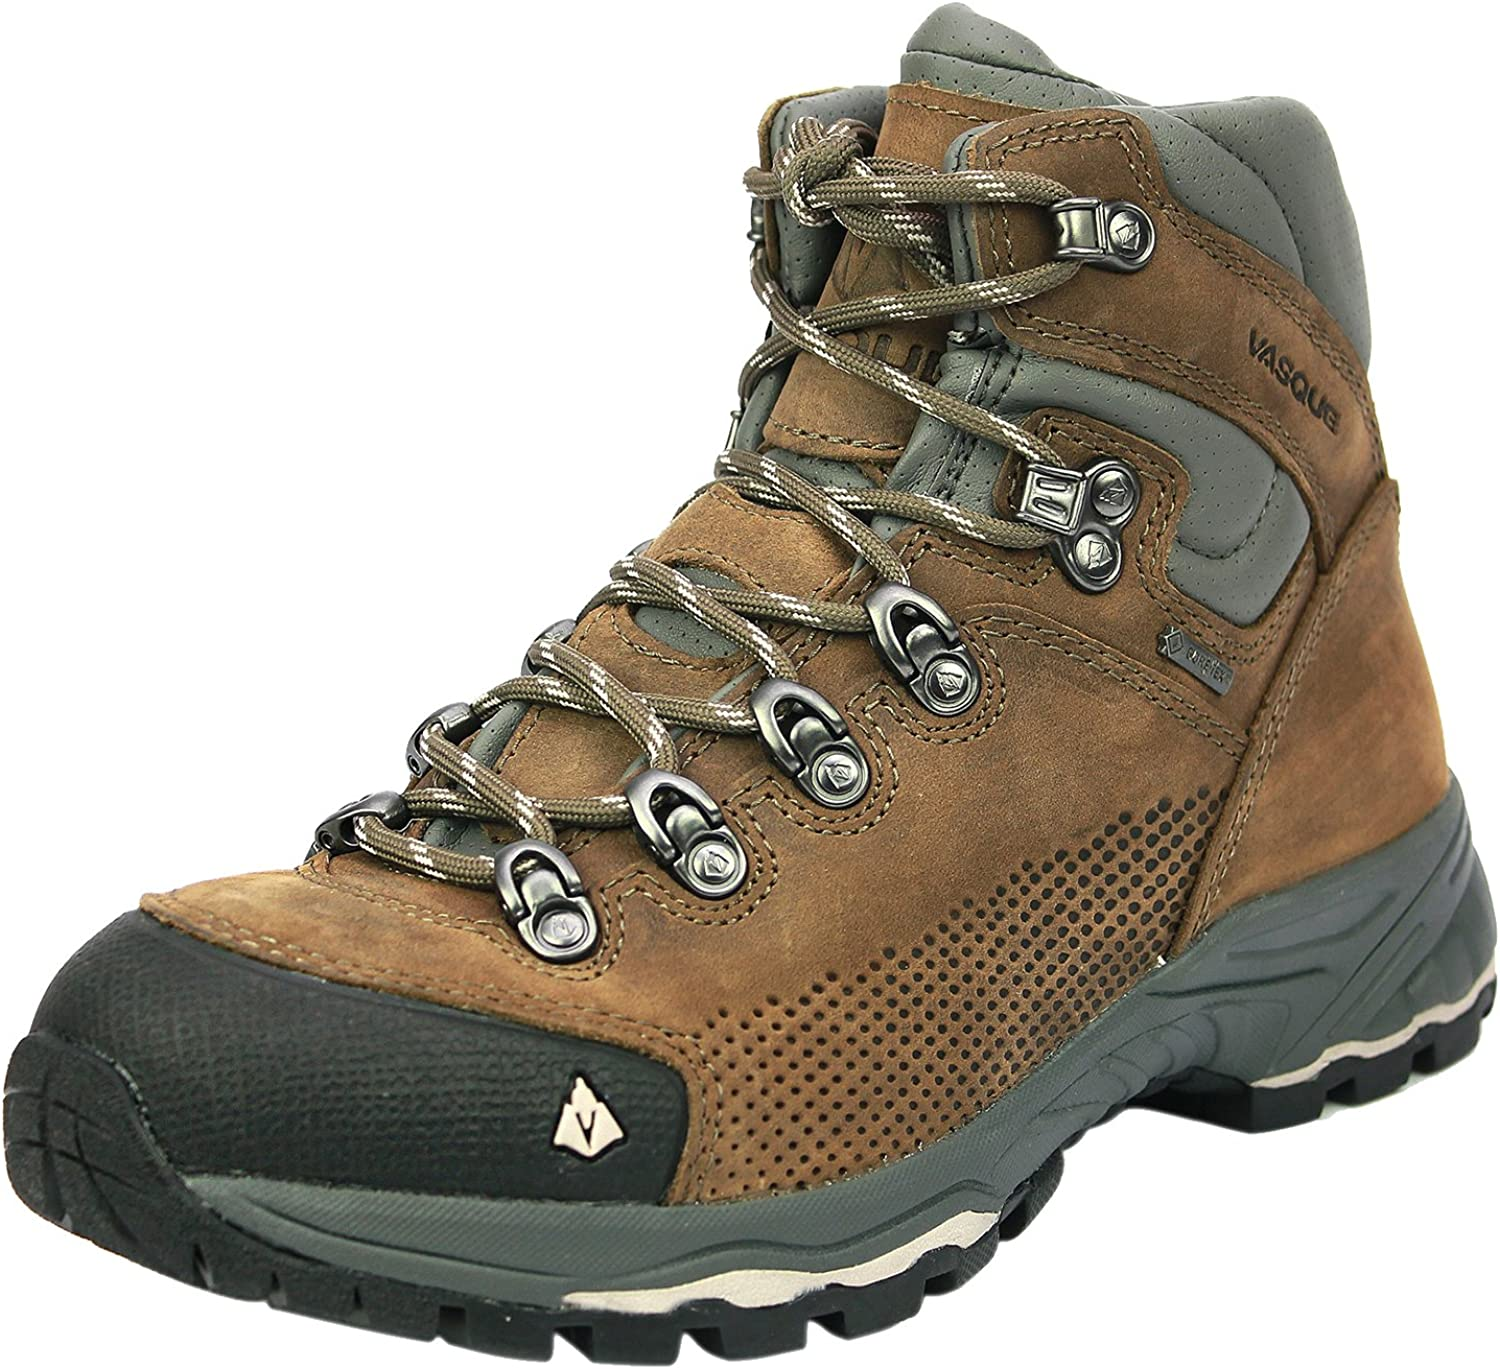 Vasque Vasque Vasque Woherrar St. Elias Gore -Tex Hiking Boot  billigt online